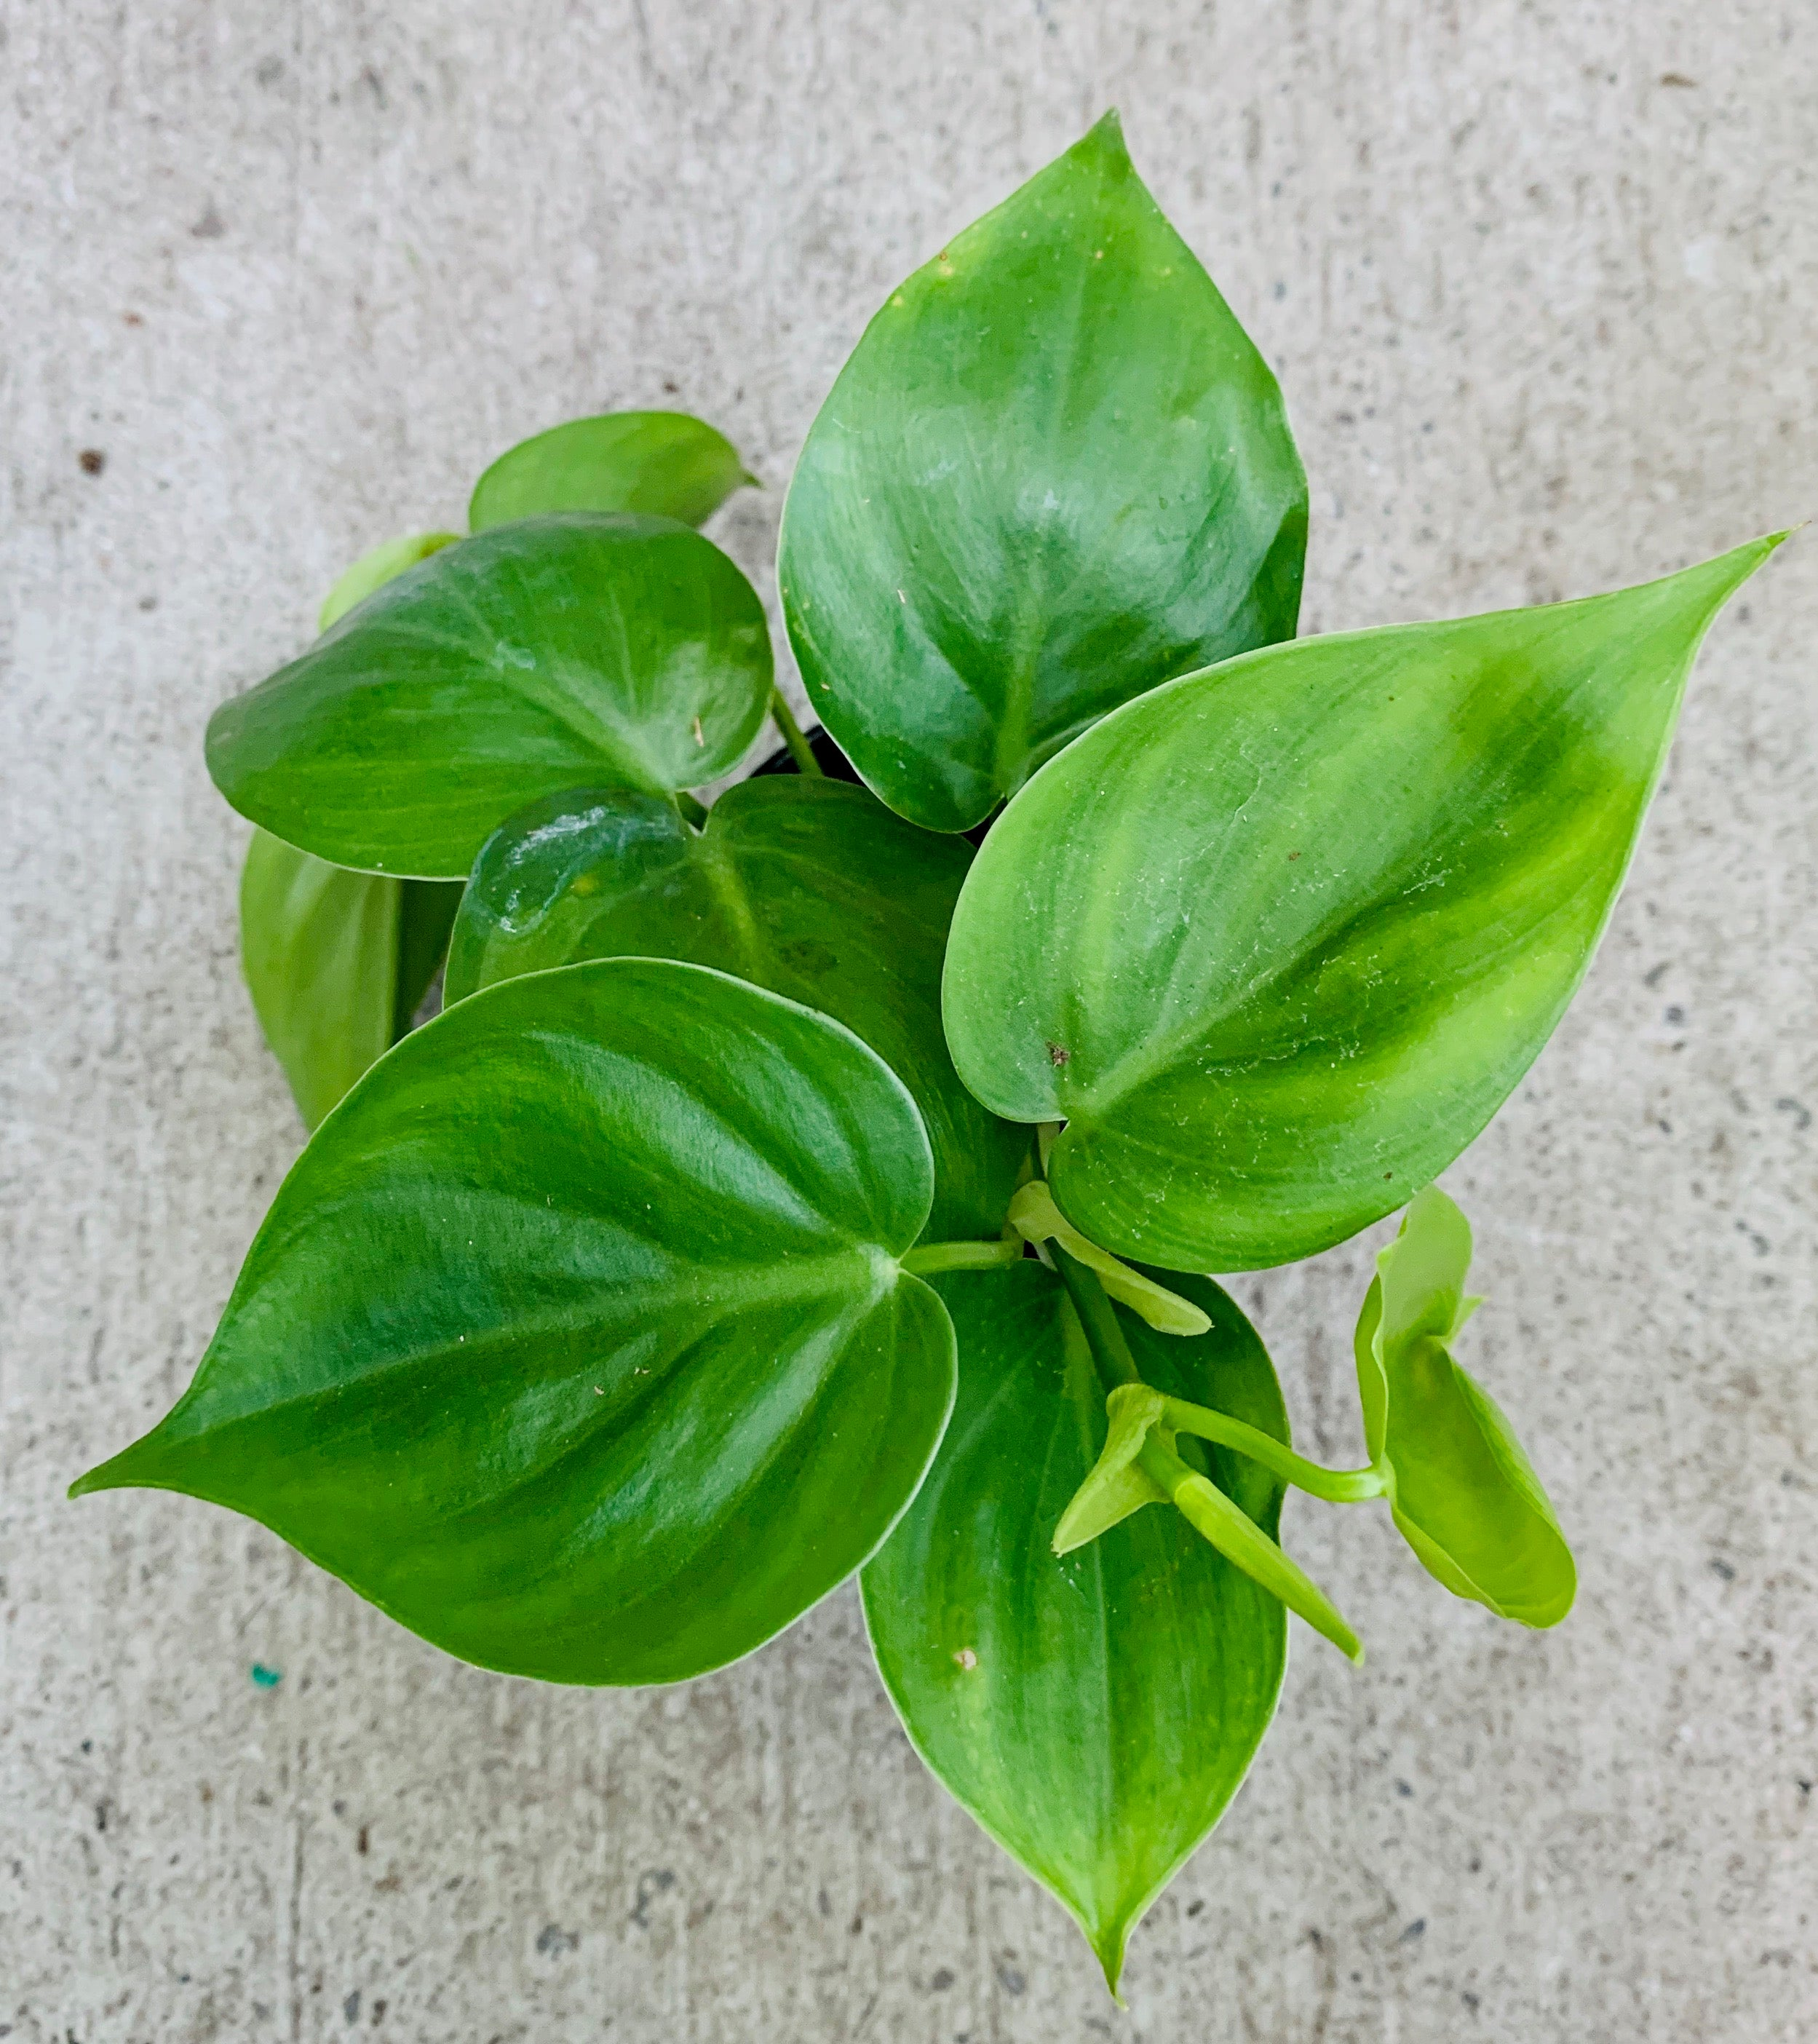 PHILODENDRON CORDATUM ( HEART LEAF)